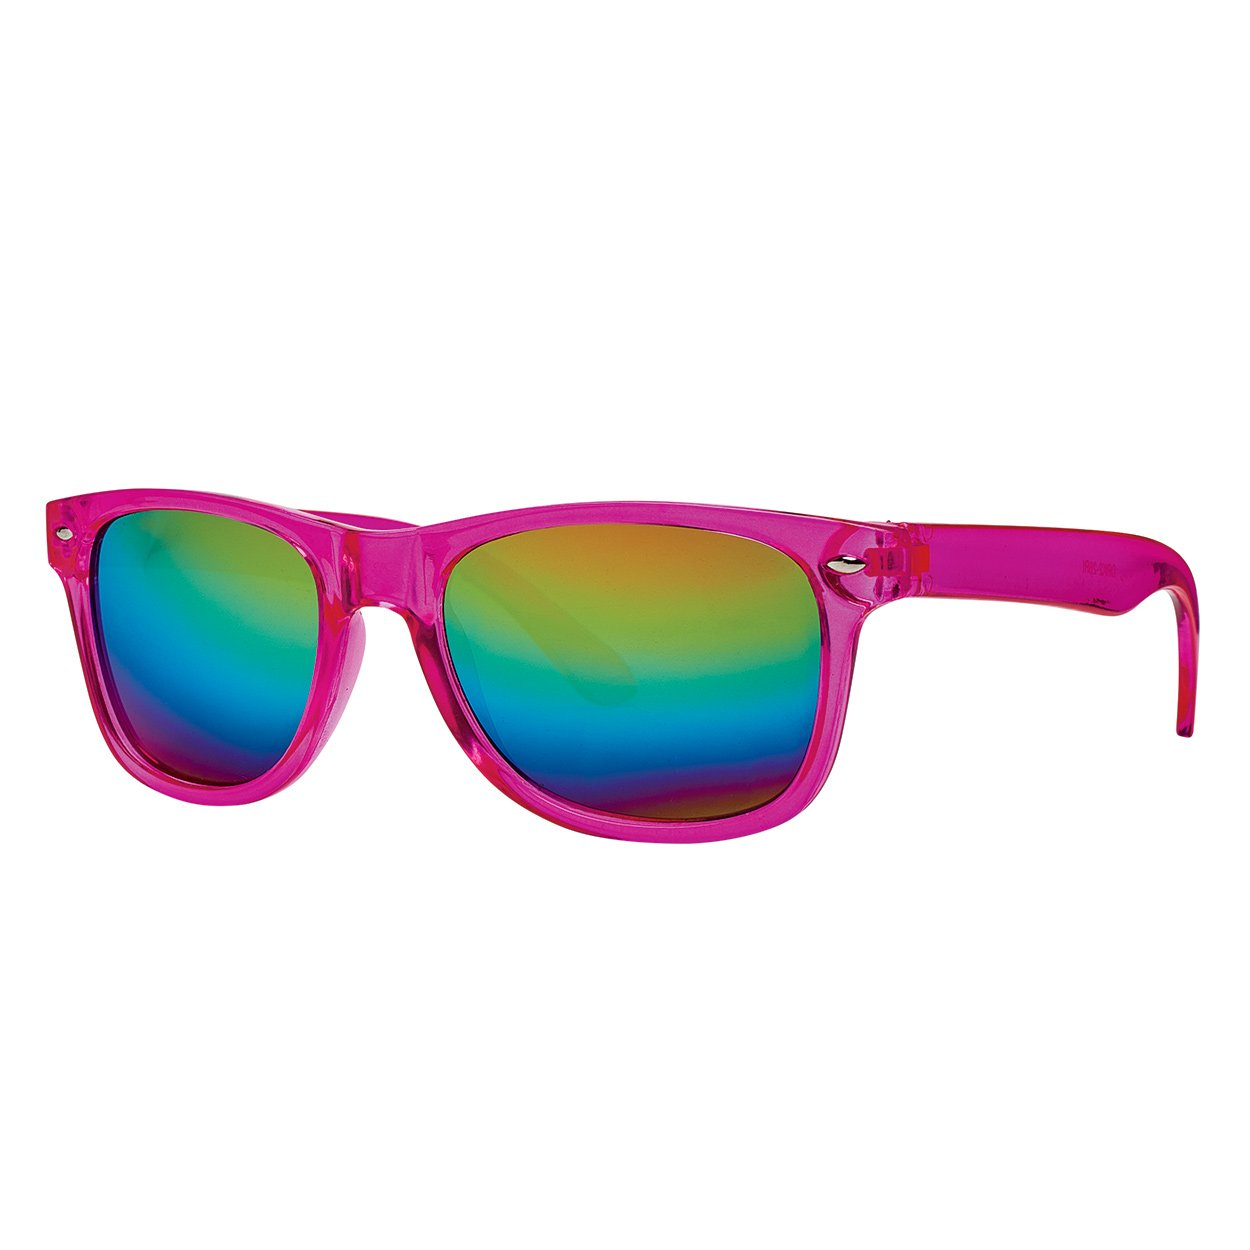 Kids Sunglasses UV 400 Girls